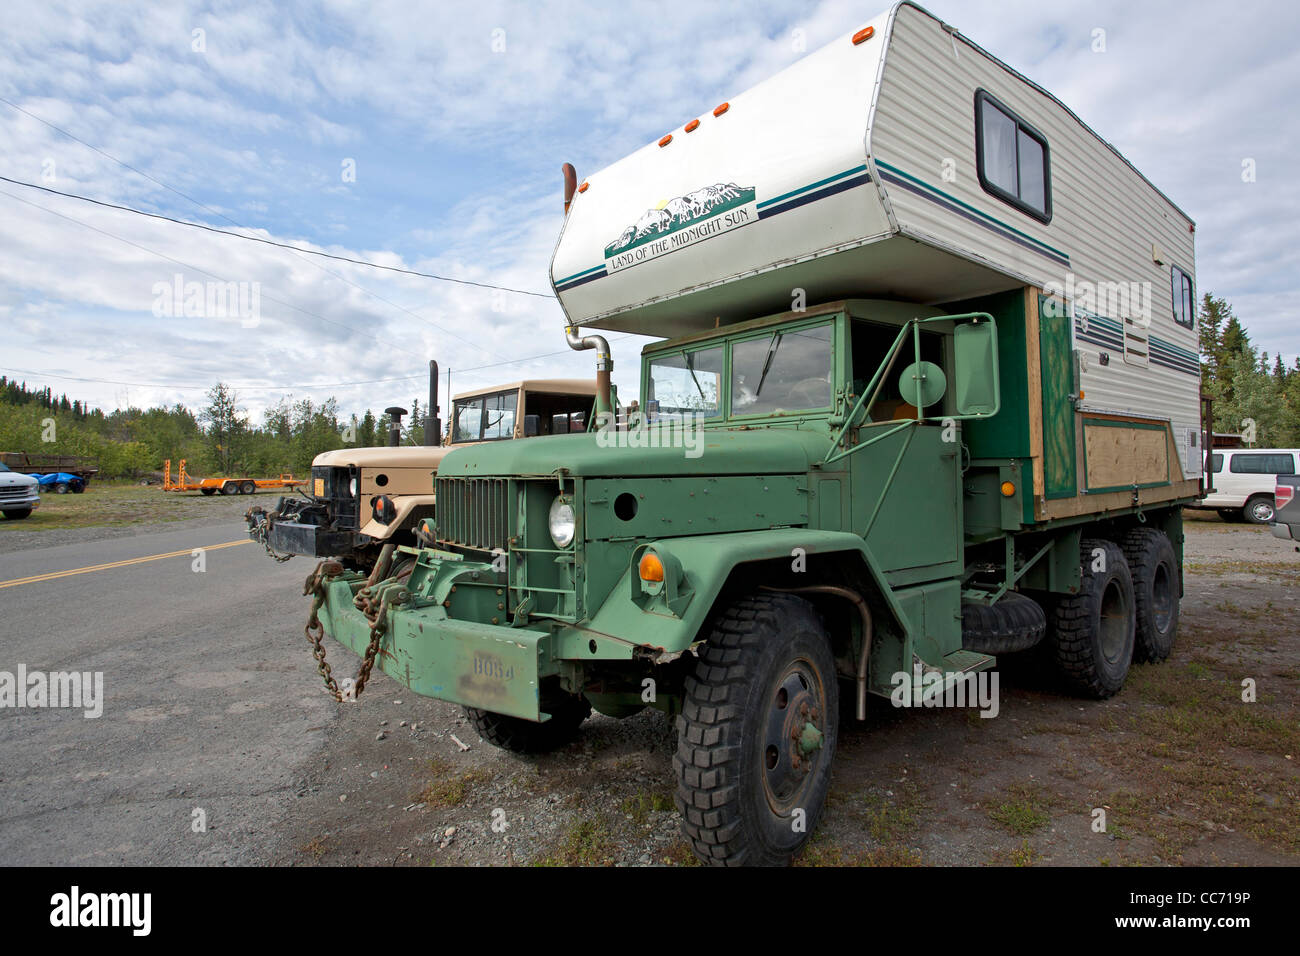 Army Truck Converted To Camper Truck Alaska Usa Stock